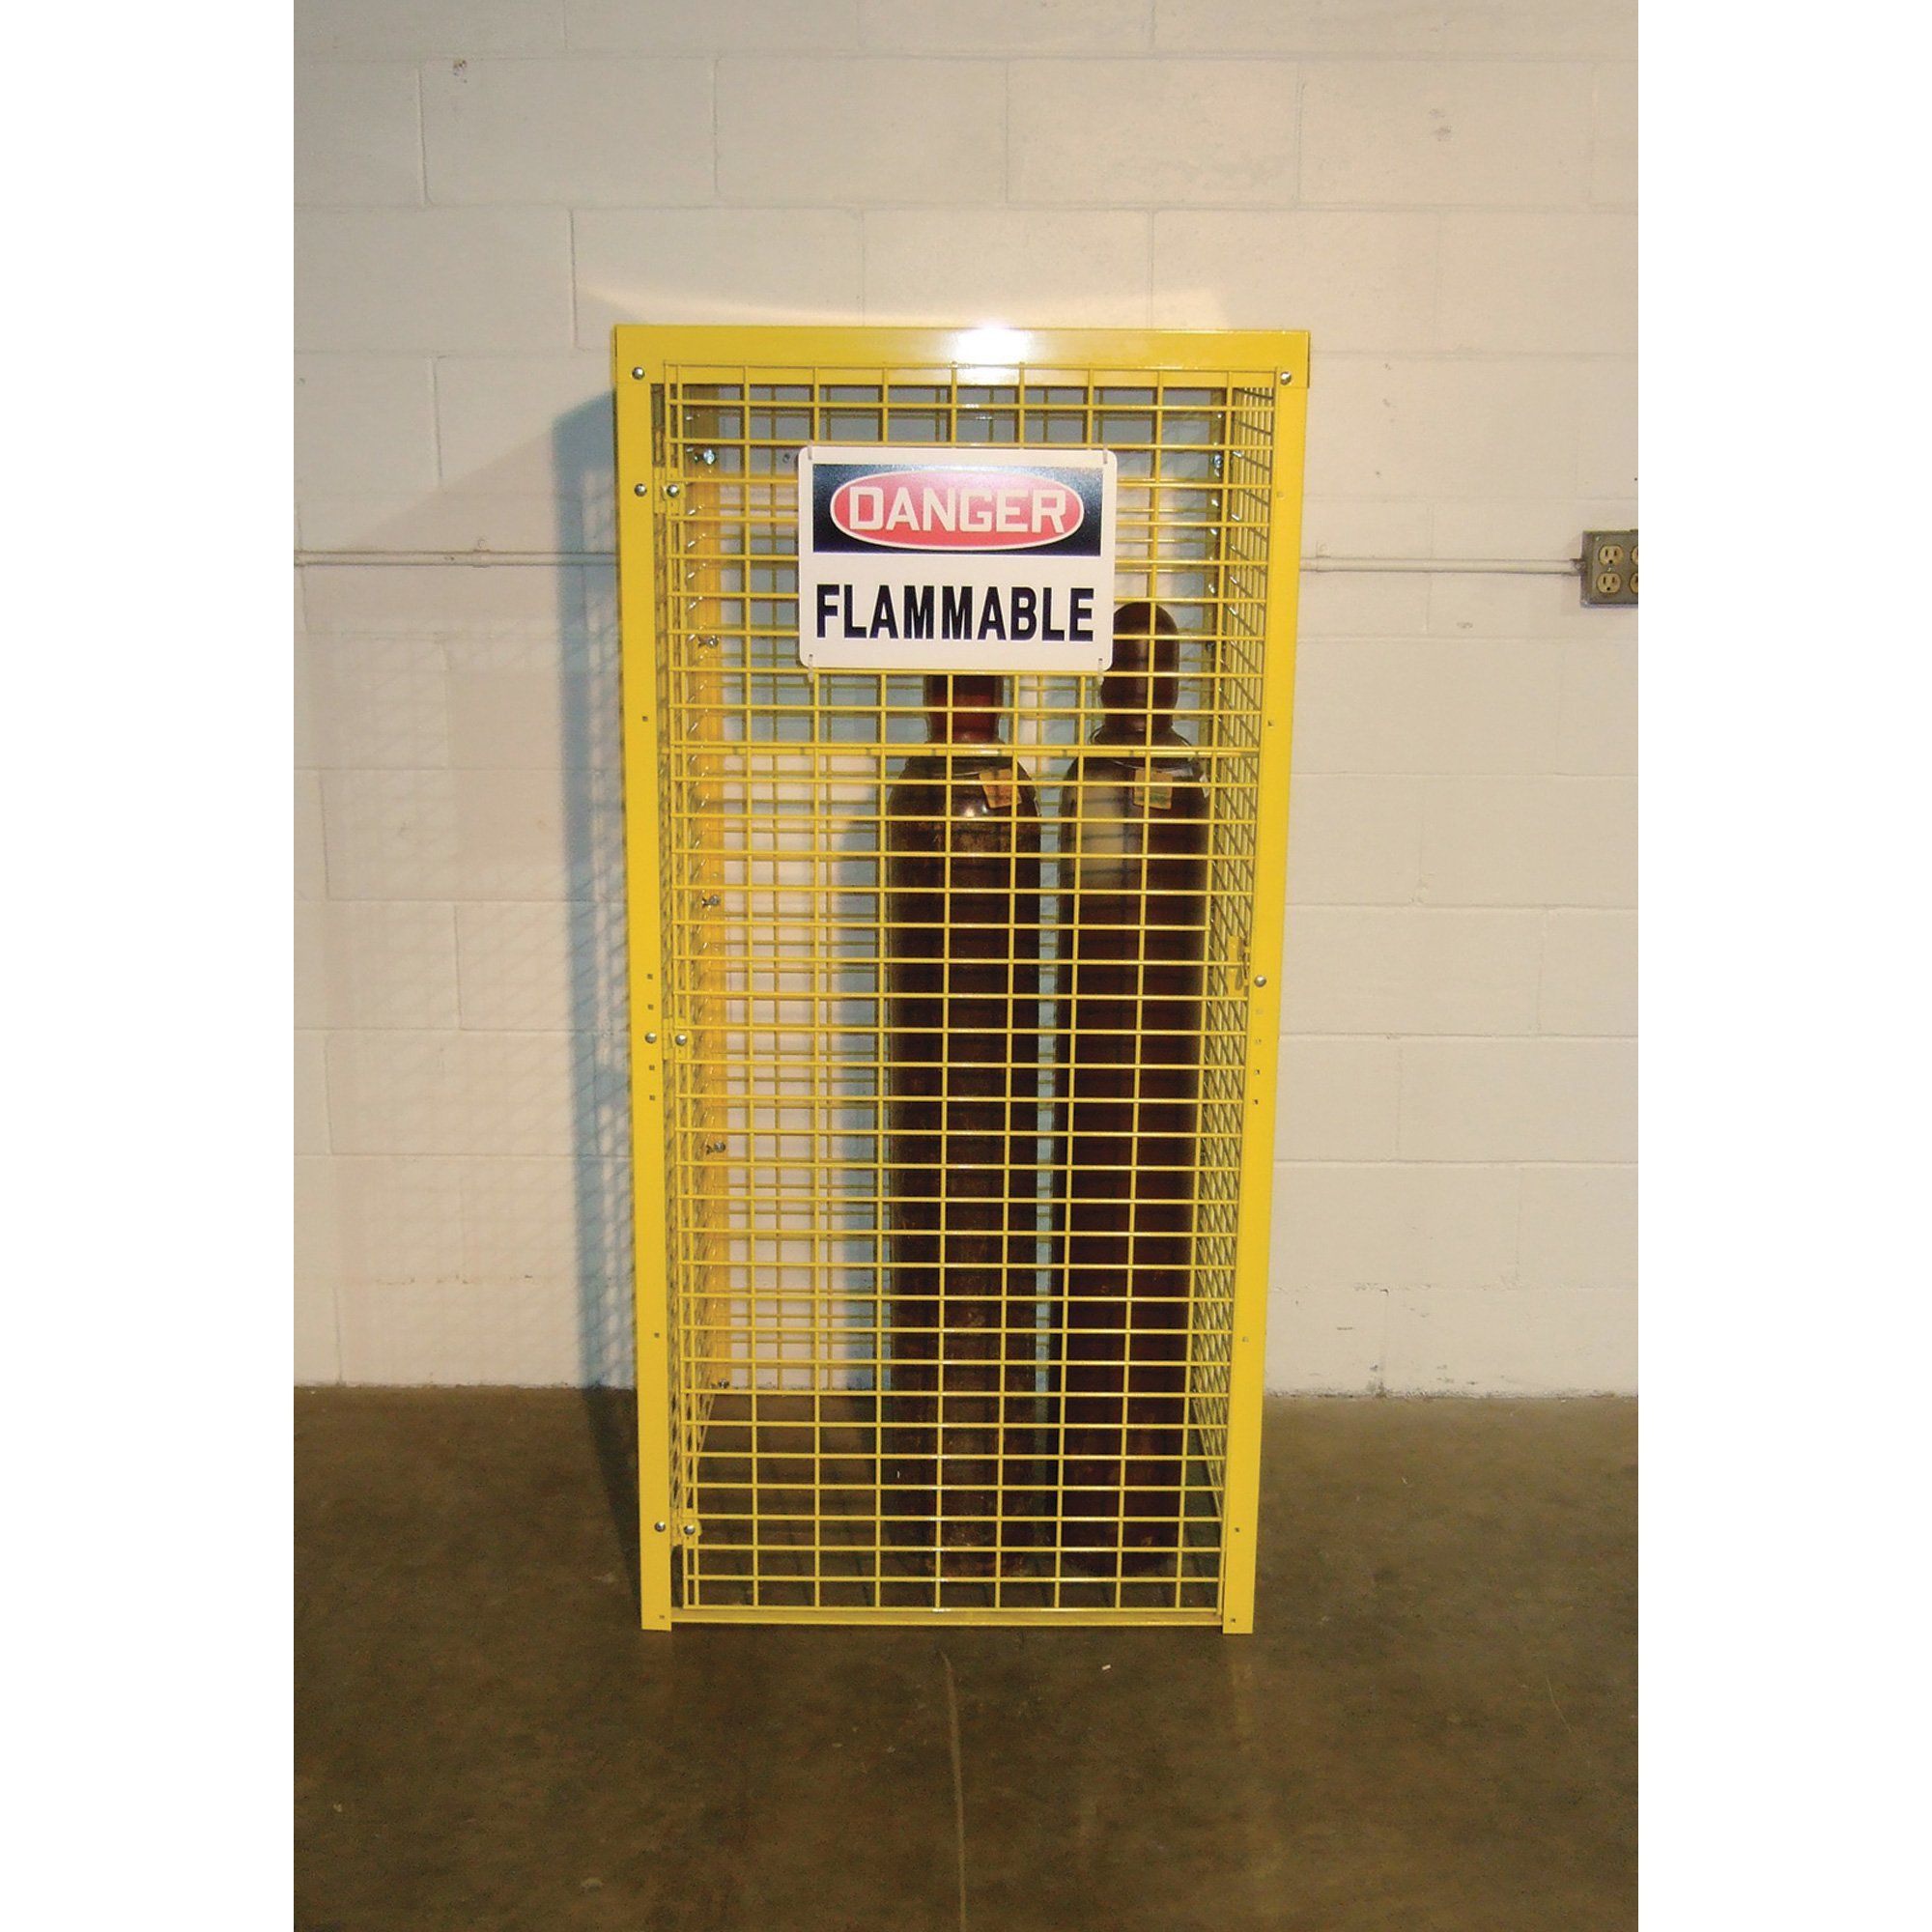 AK Saf-T-Store Cylinder Cabinet - 29in.W x 29in.D x 66in.H, Holds 8 Horizontal Cylinder Tanks, Model# SAF-T-8